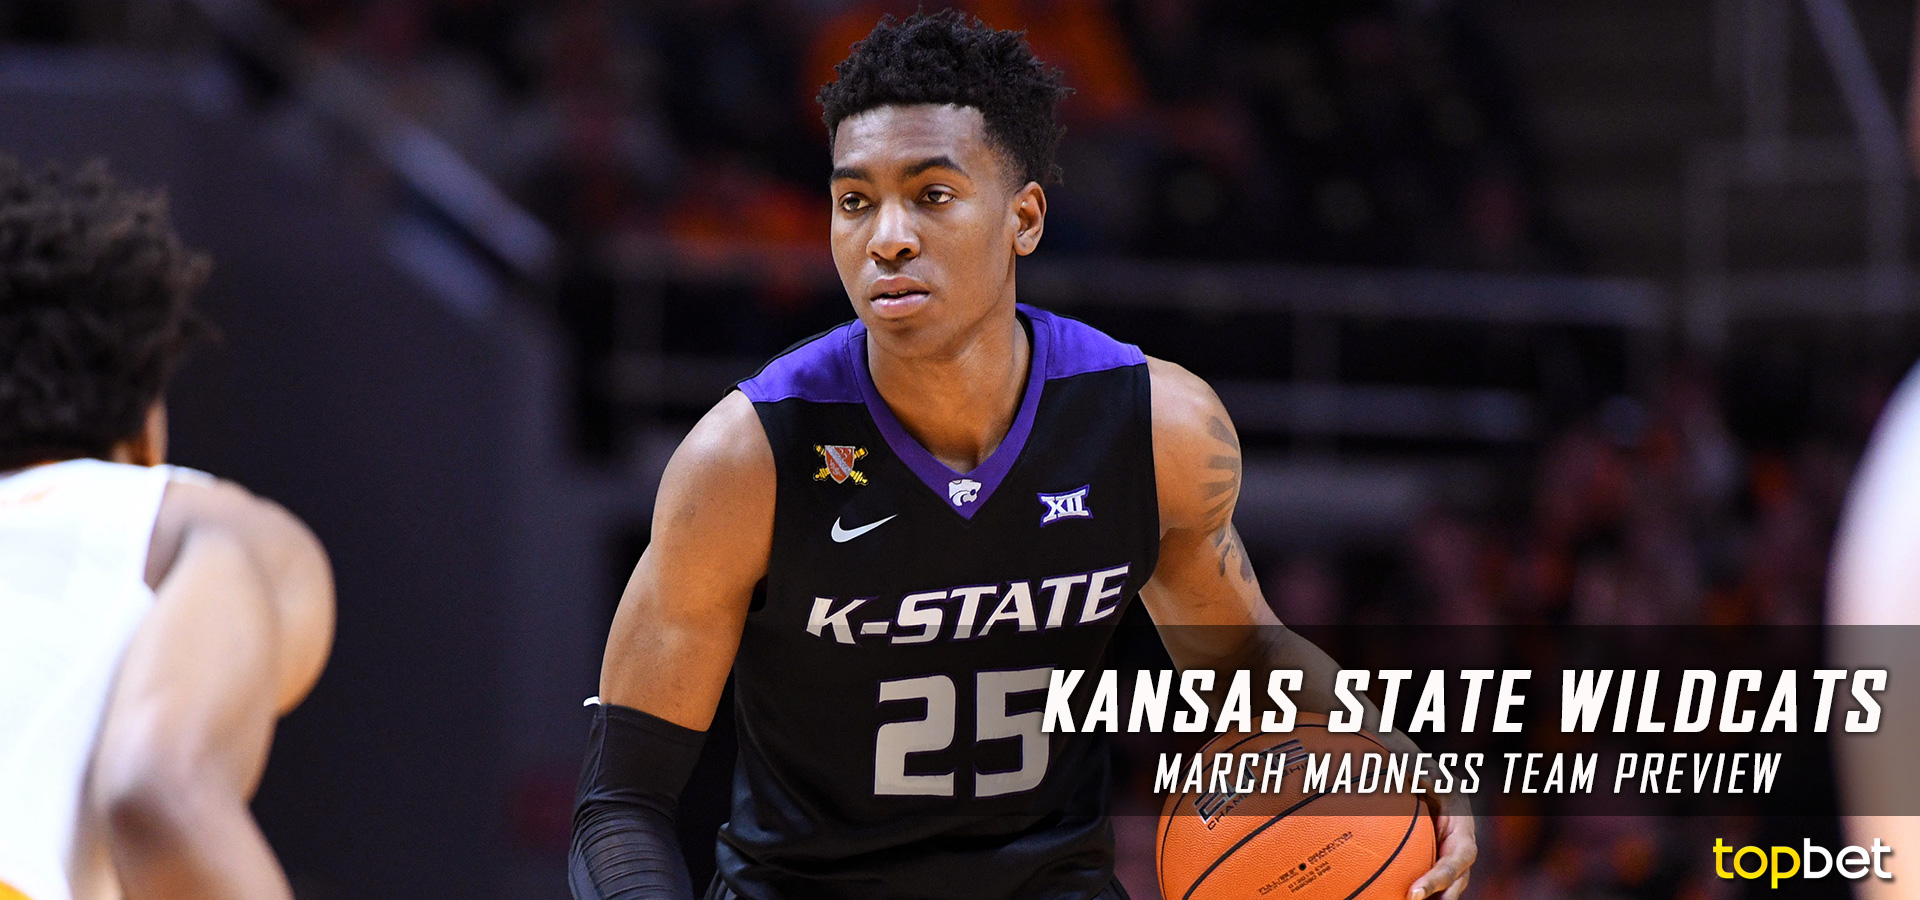 Kansas State – March Madness Team Predictions and Odds 2017